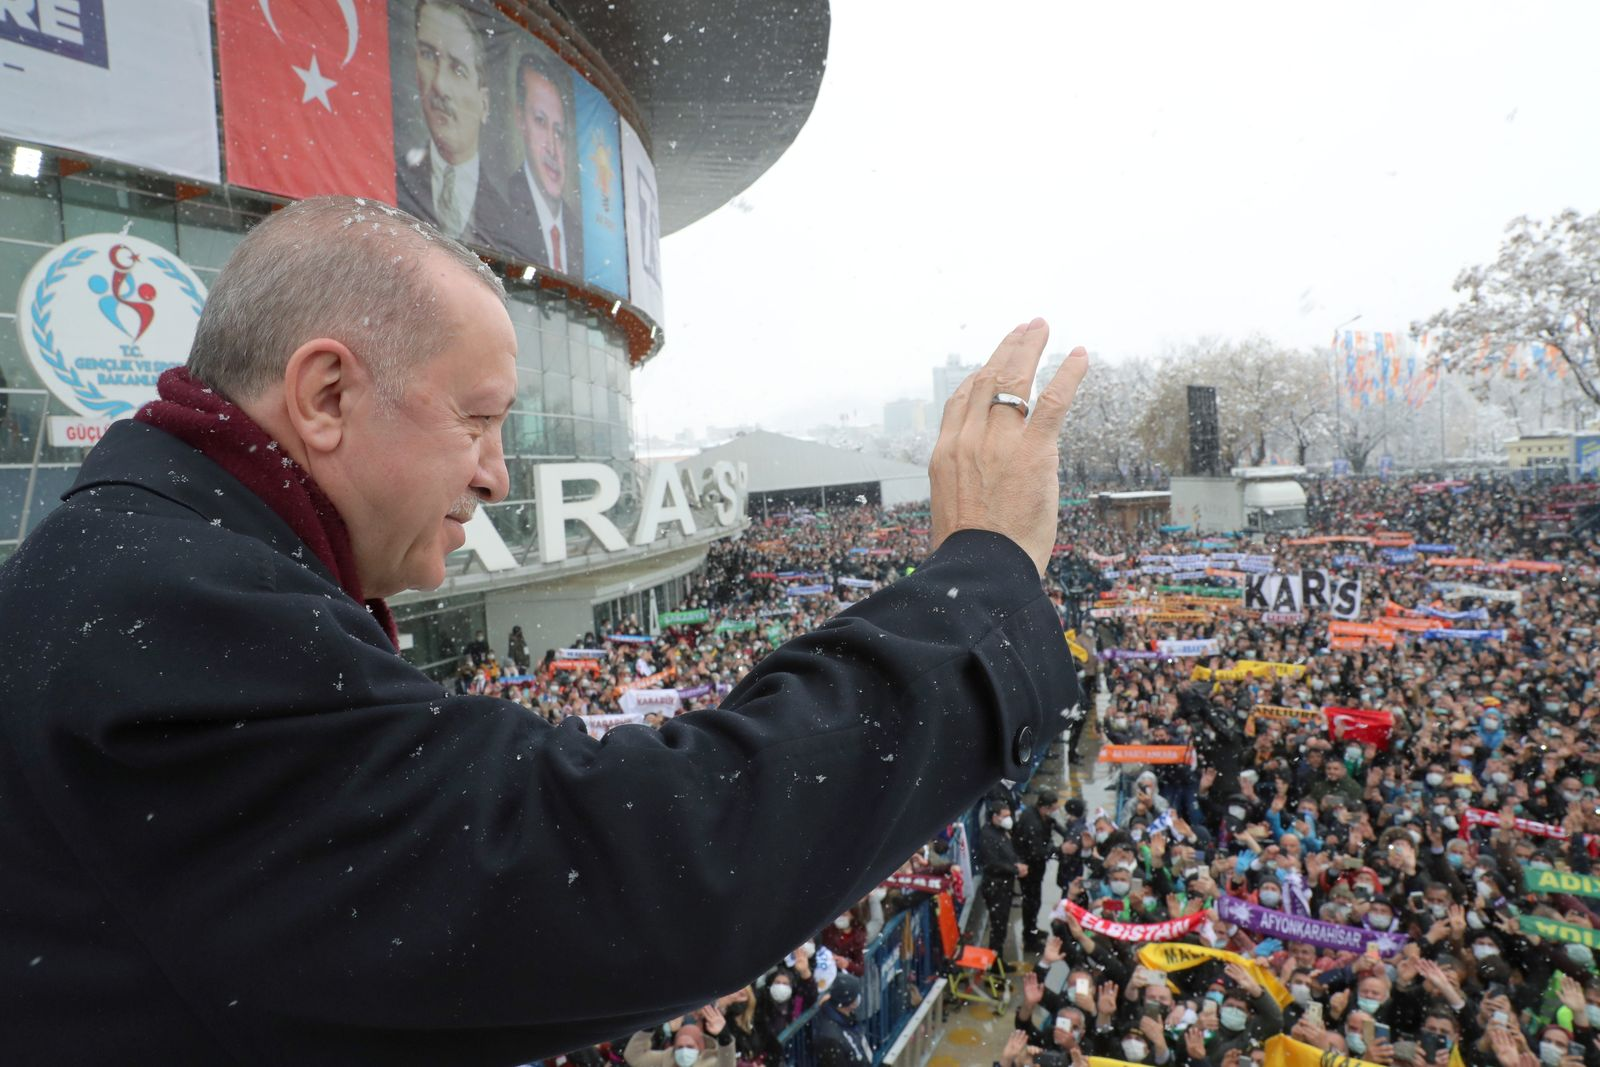 Turkish President Erdogan greets his supporters in Ankara